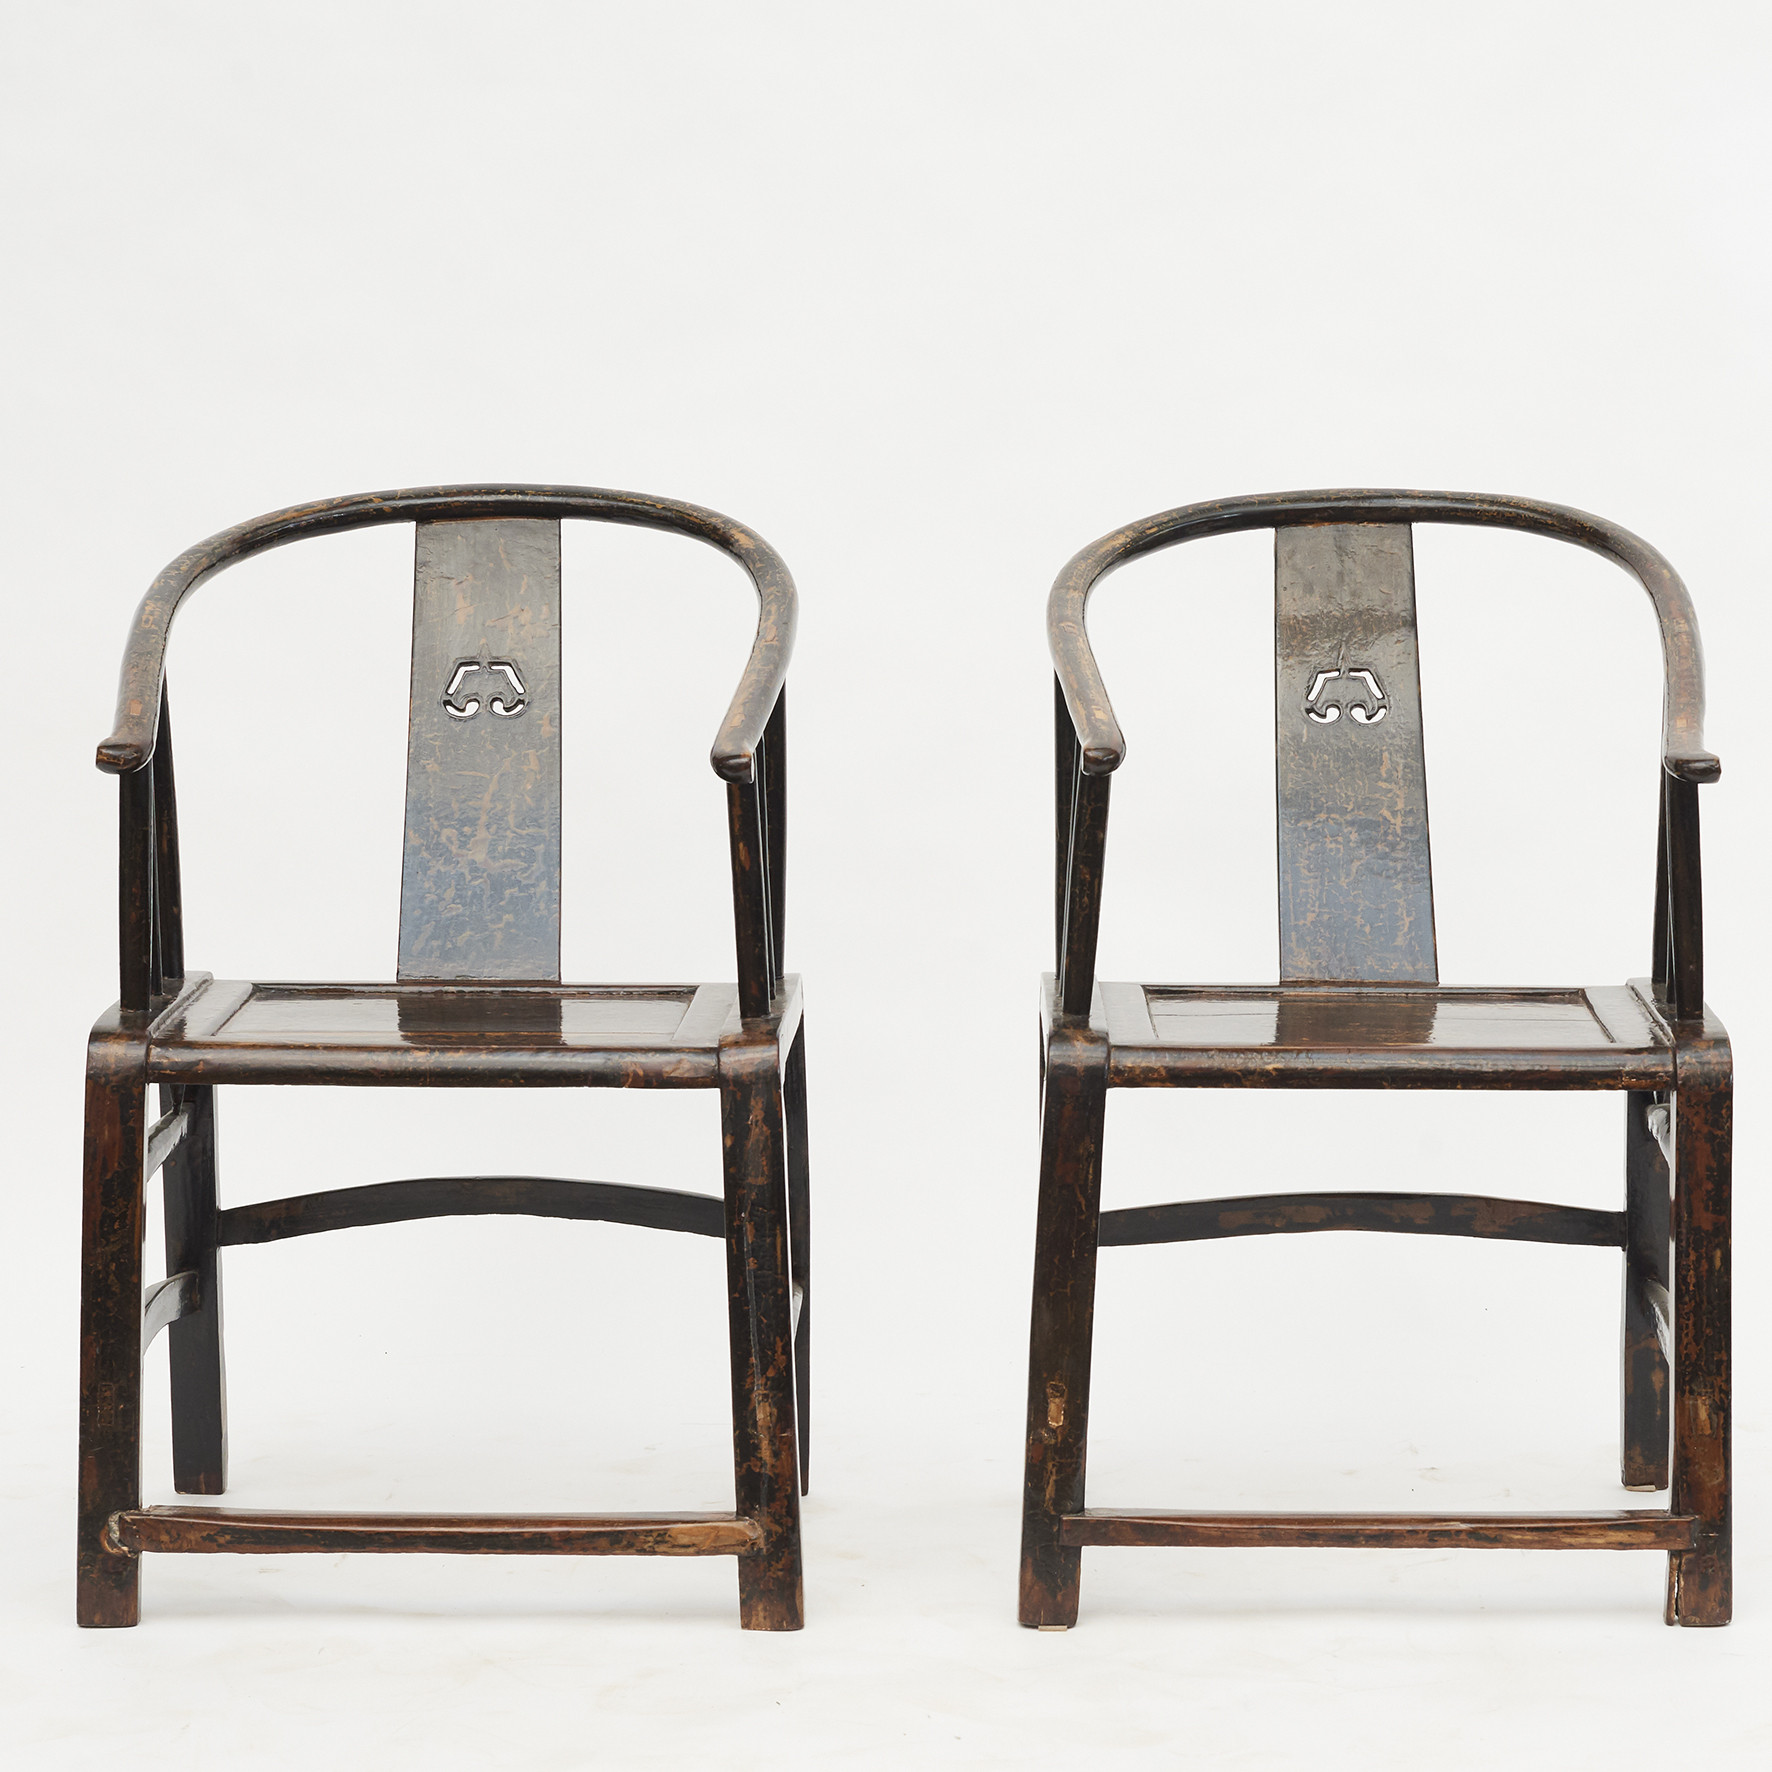 Pair of 'Lazy Chairs', early 19th Century